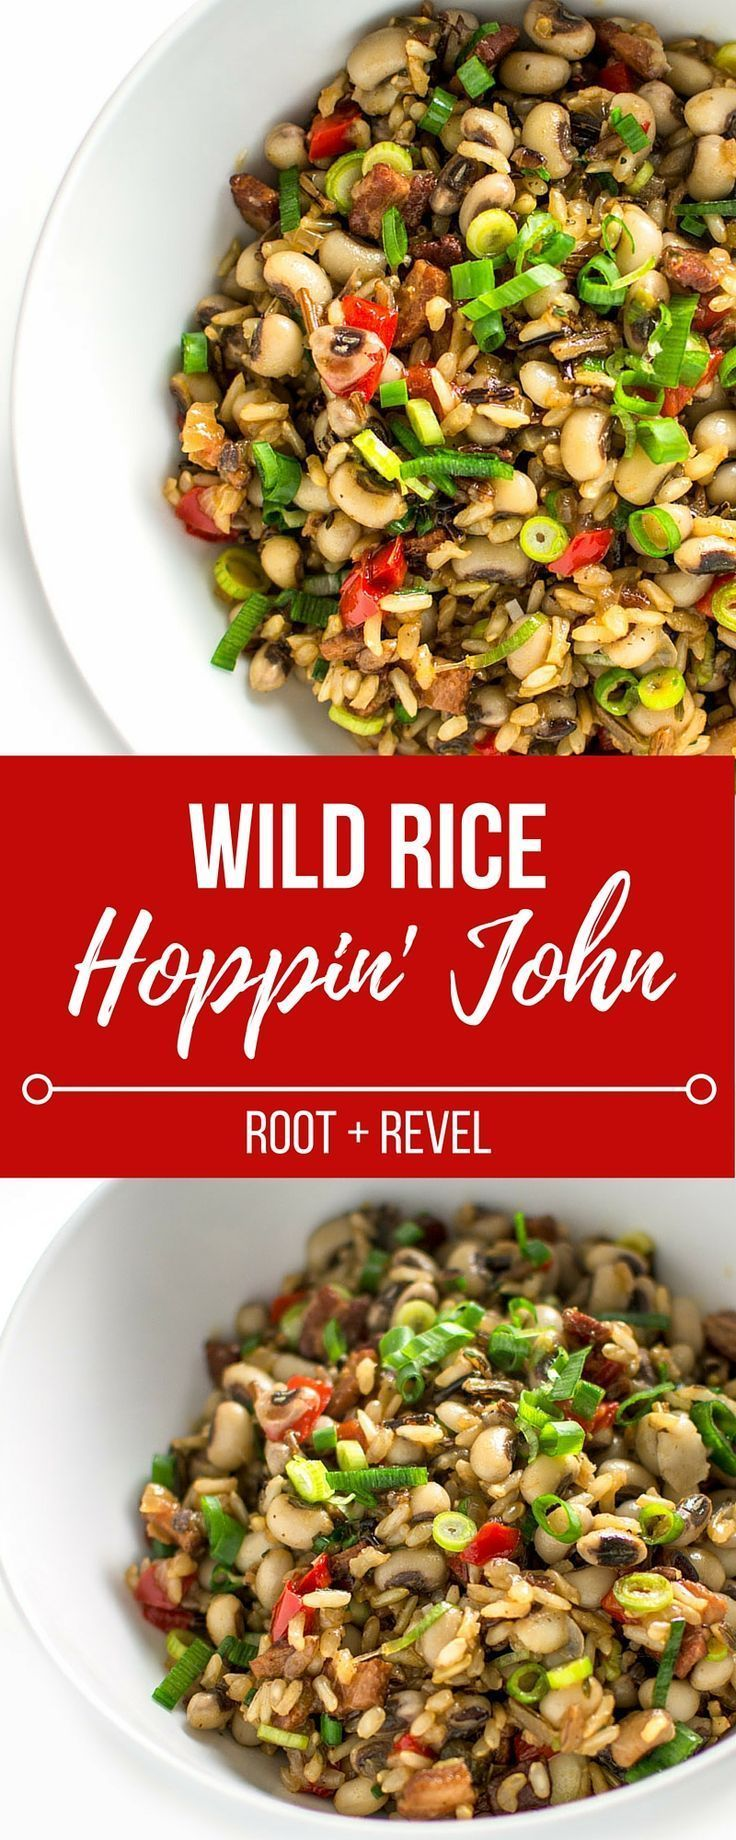 The classic Southern dish of Hoppin' John gets a colorful and nutritious boost from peppers, scallions and whole grain wild rice. Gluten-free and DELICIOUS! | http://rootandrevel.com